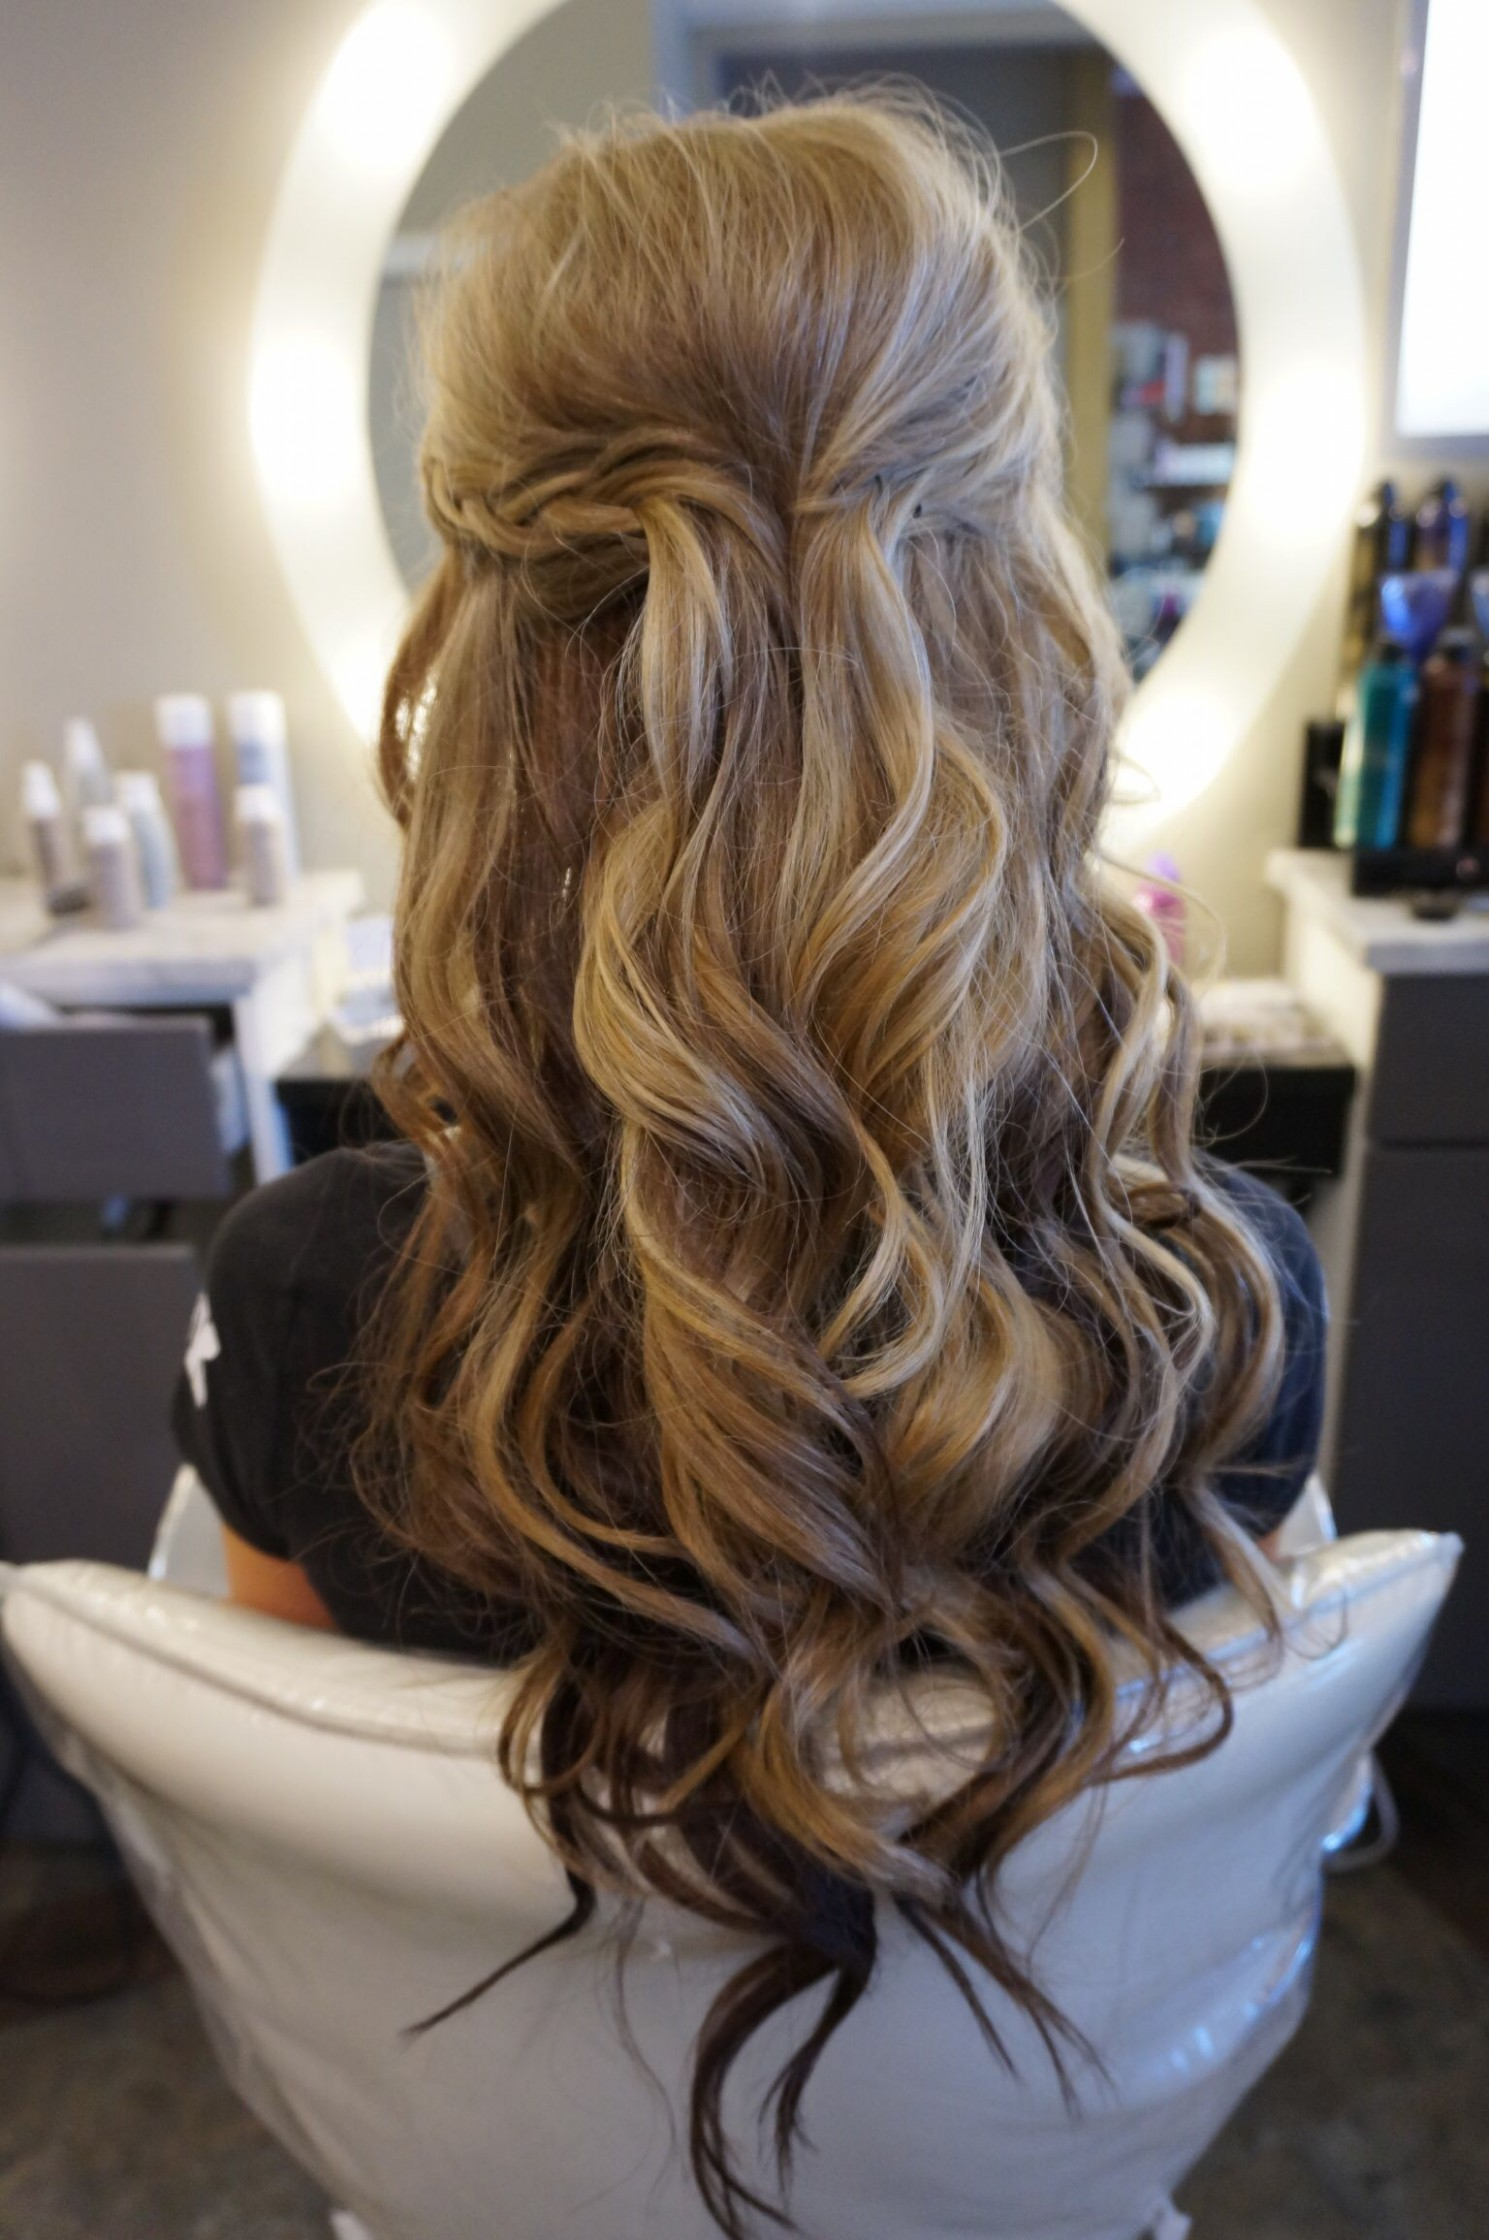 Long Hair With Loose Curls Perfect Half Up Half Down Style! Follow Half Up Half Down Curly Hairstyles